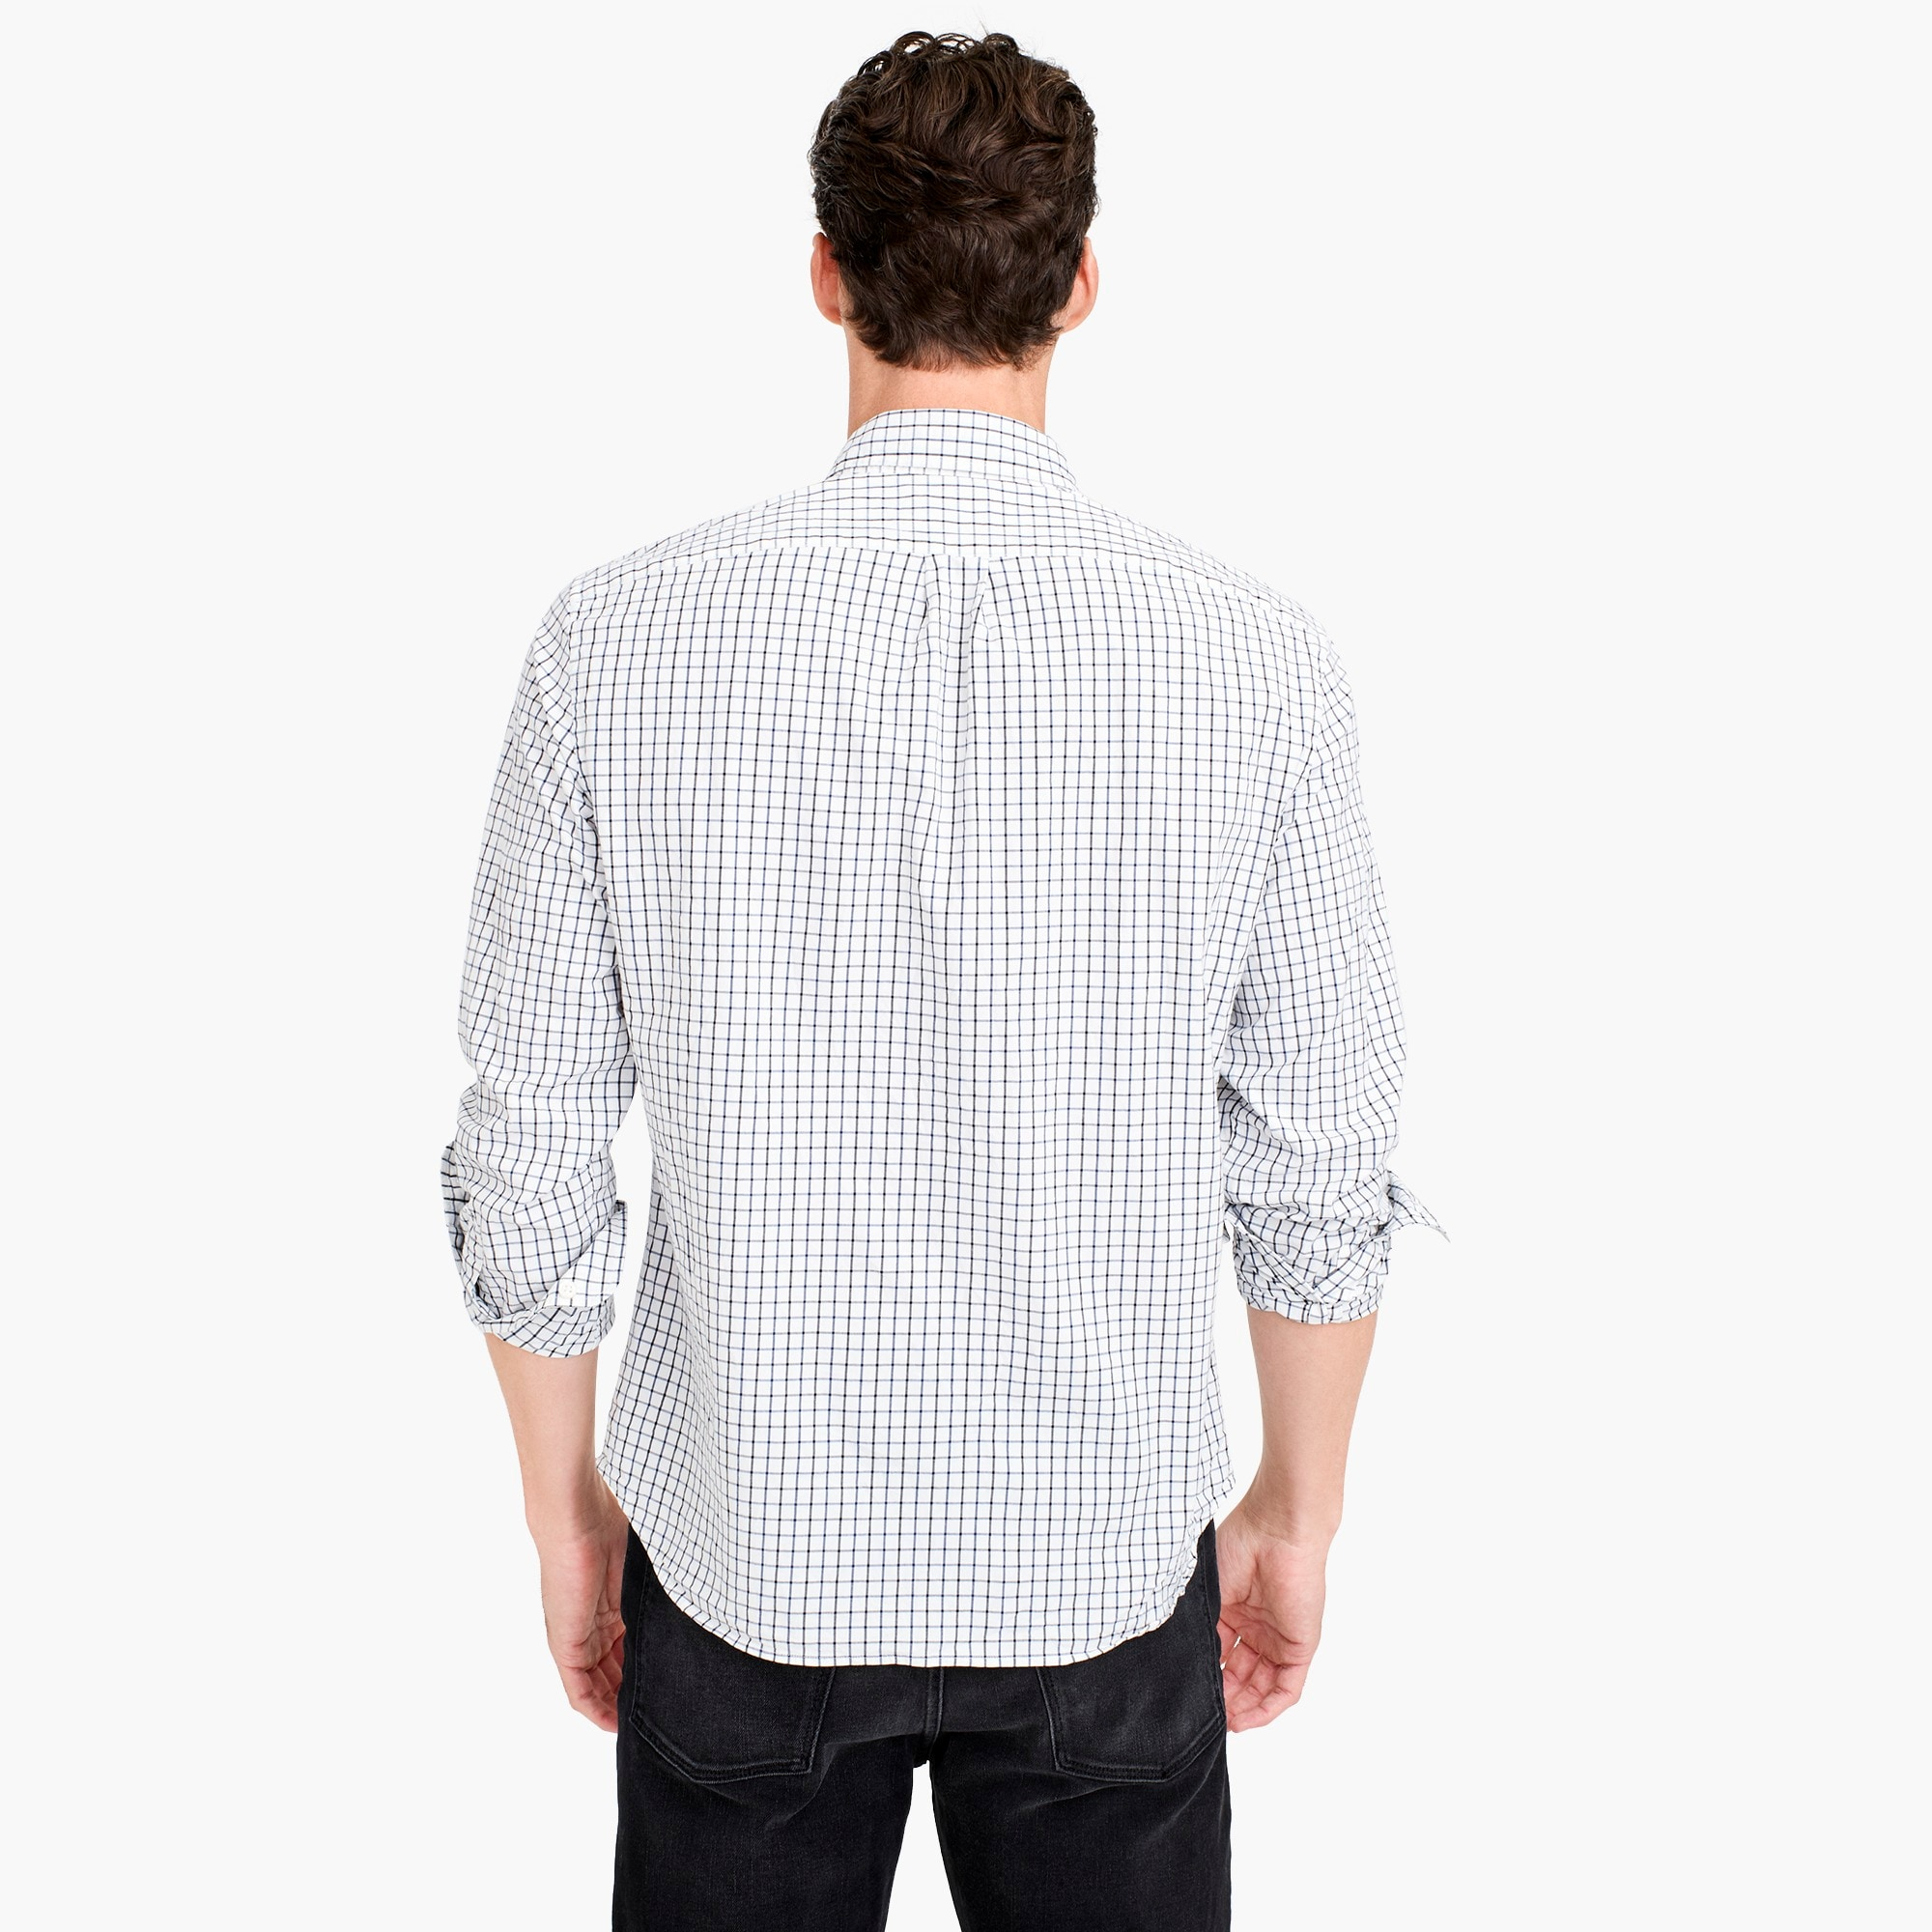 Image 3 for Untucked stretch Secret Wash shirt in tattersall